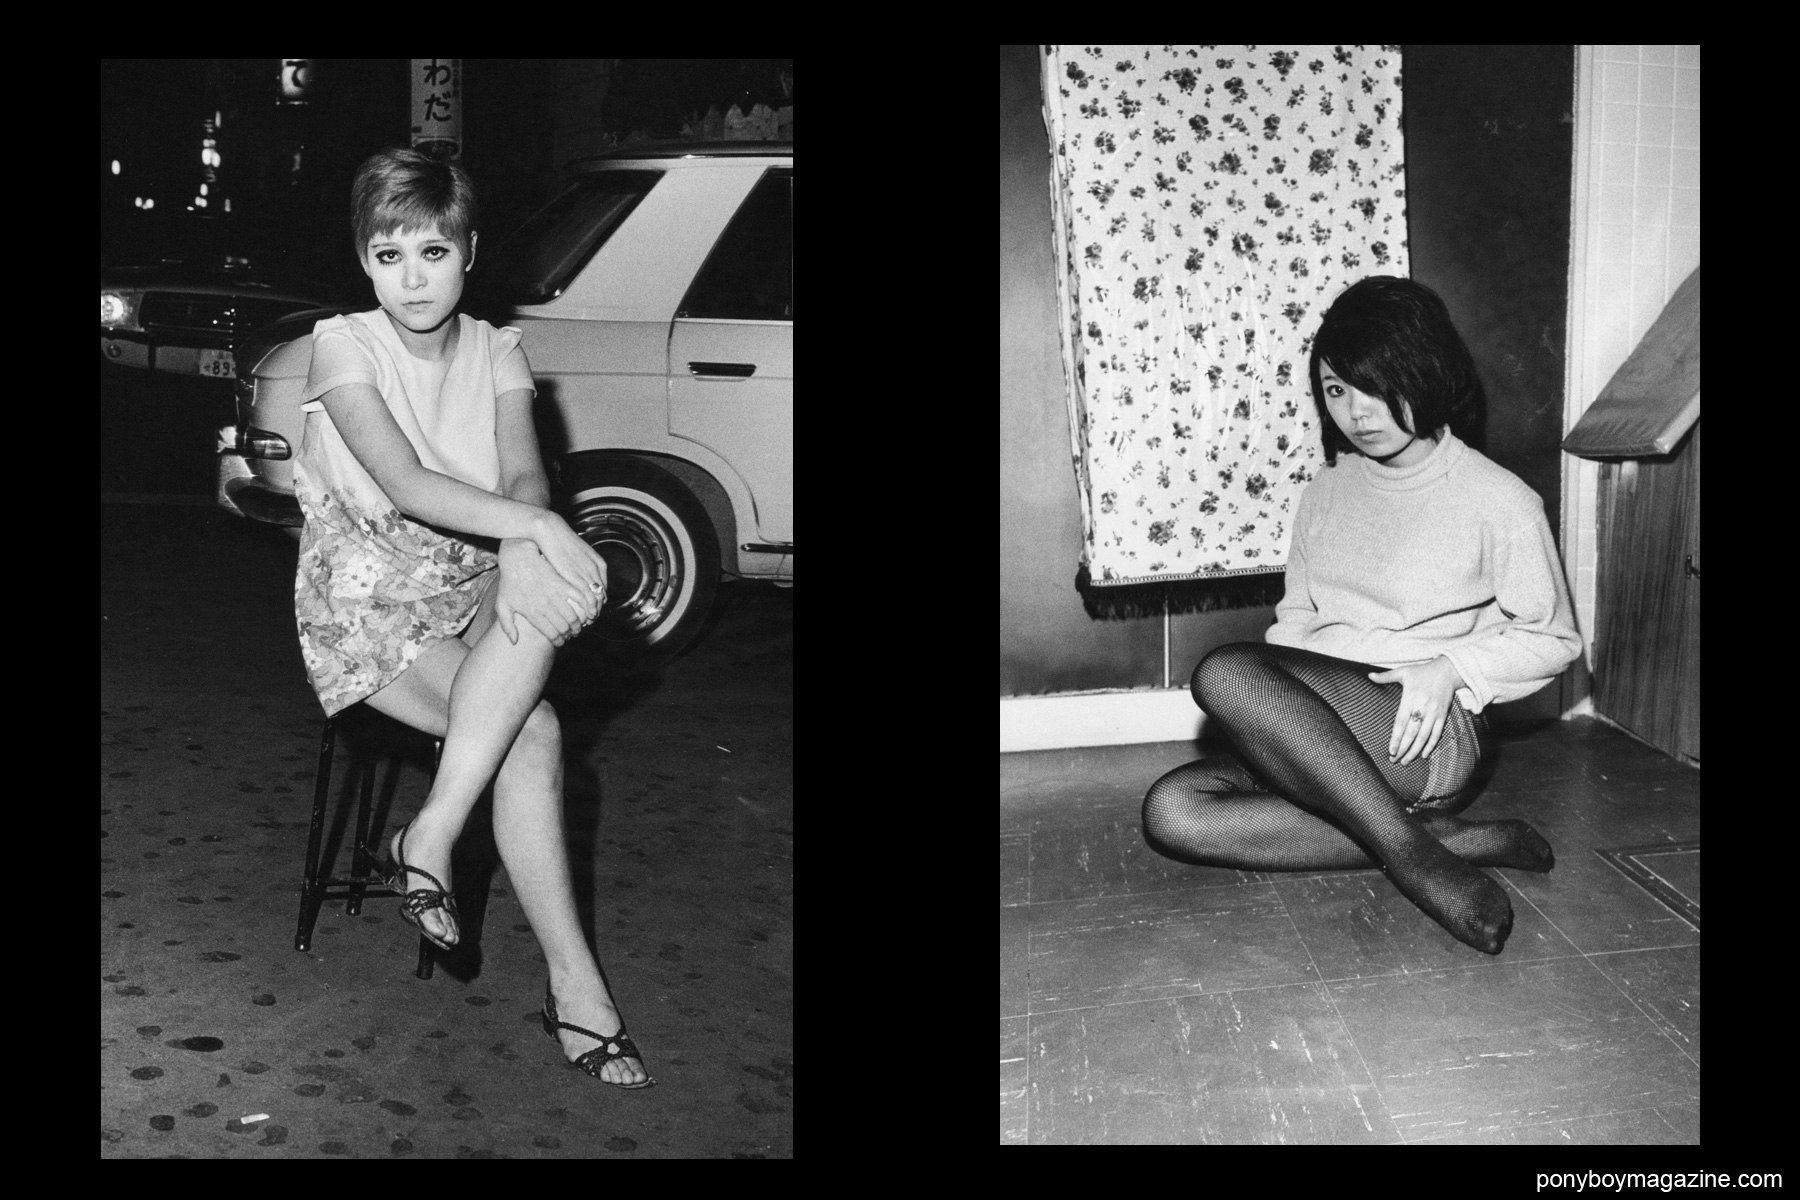 Japanese hookers in 1960's Tokyo photographed by Watanabe Katsumi.